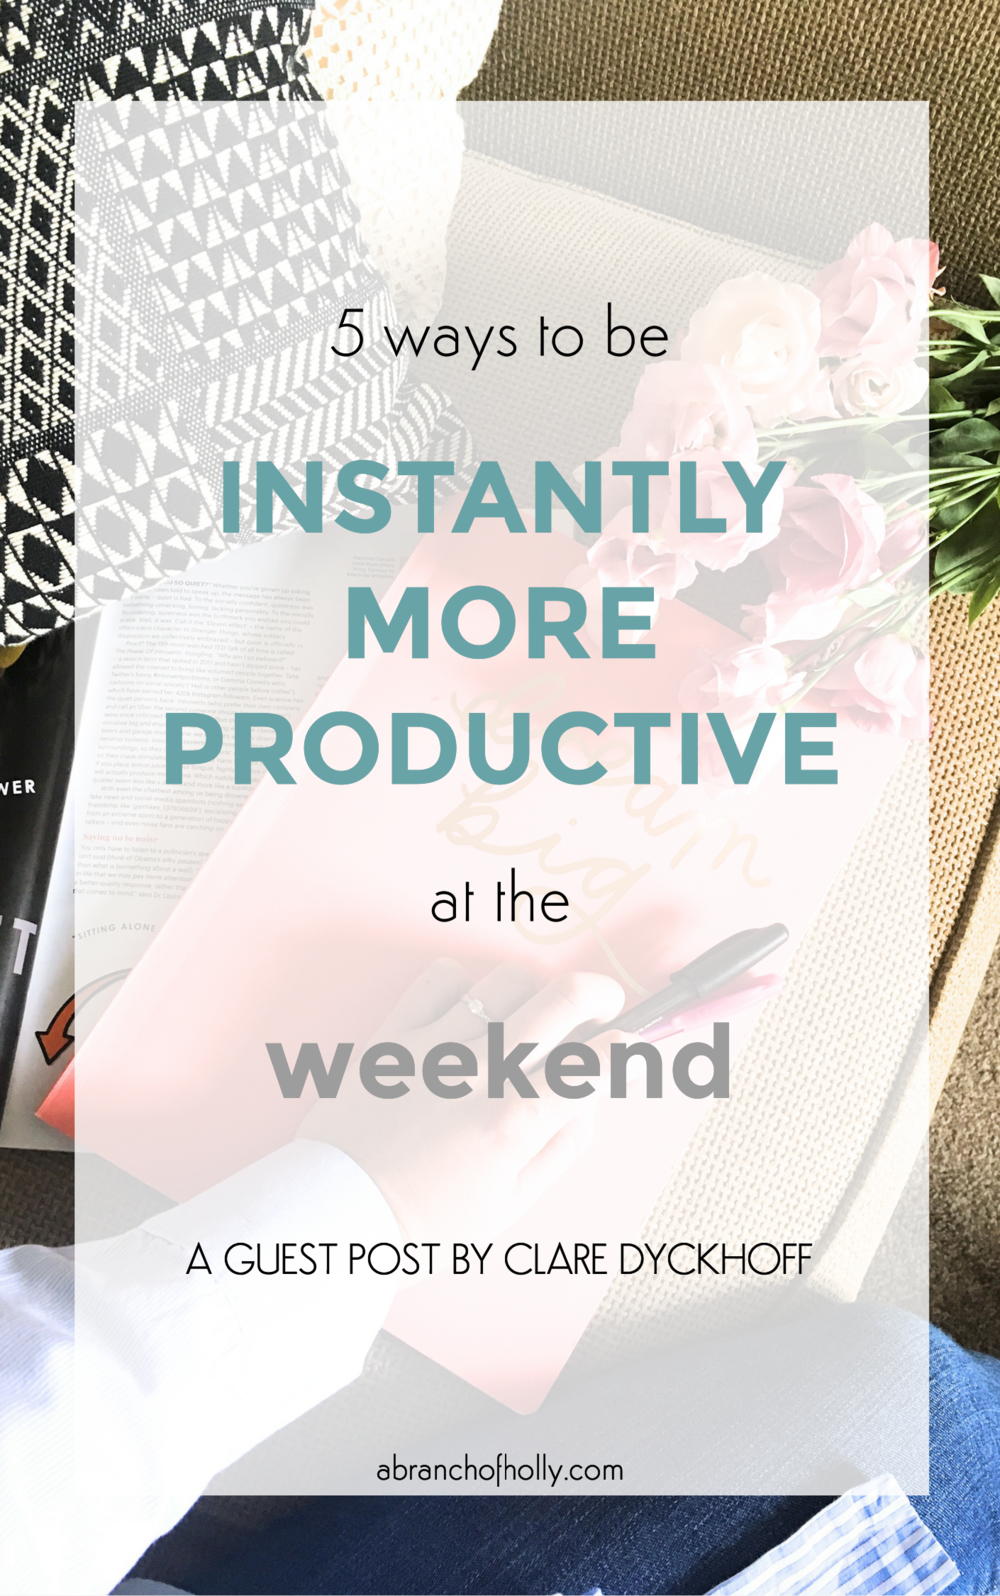 5 ways to be instantly more productive at the weekend